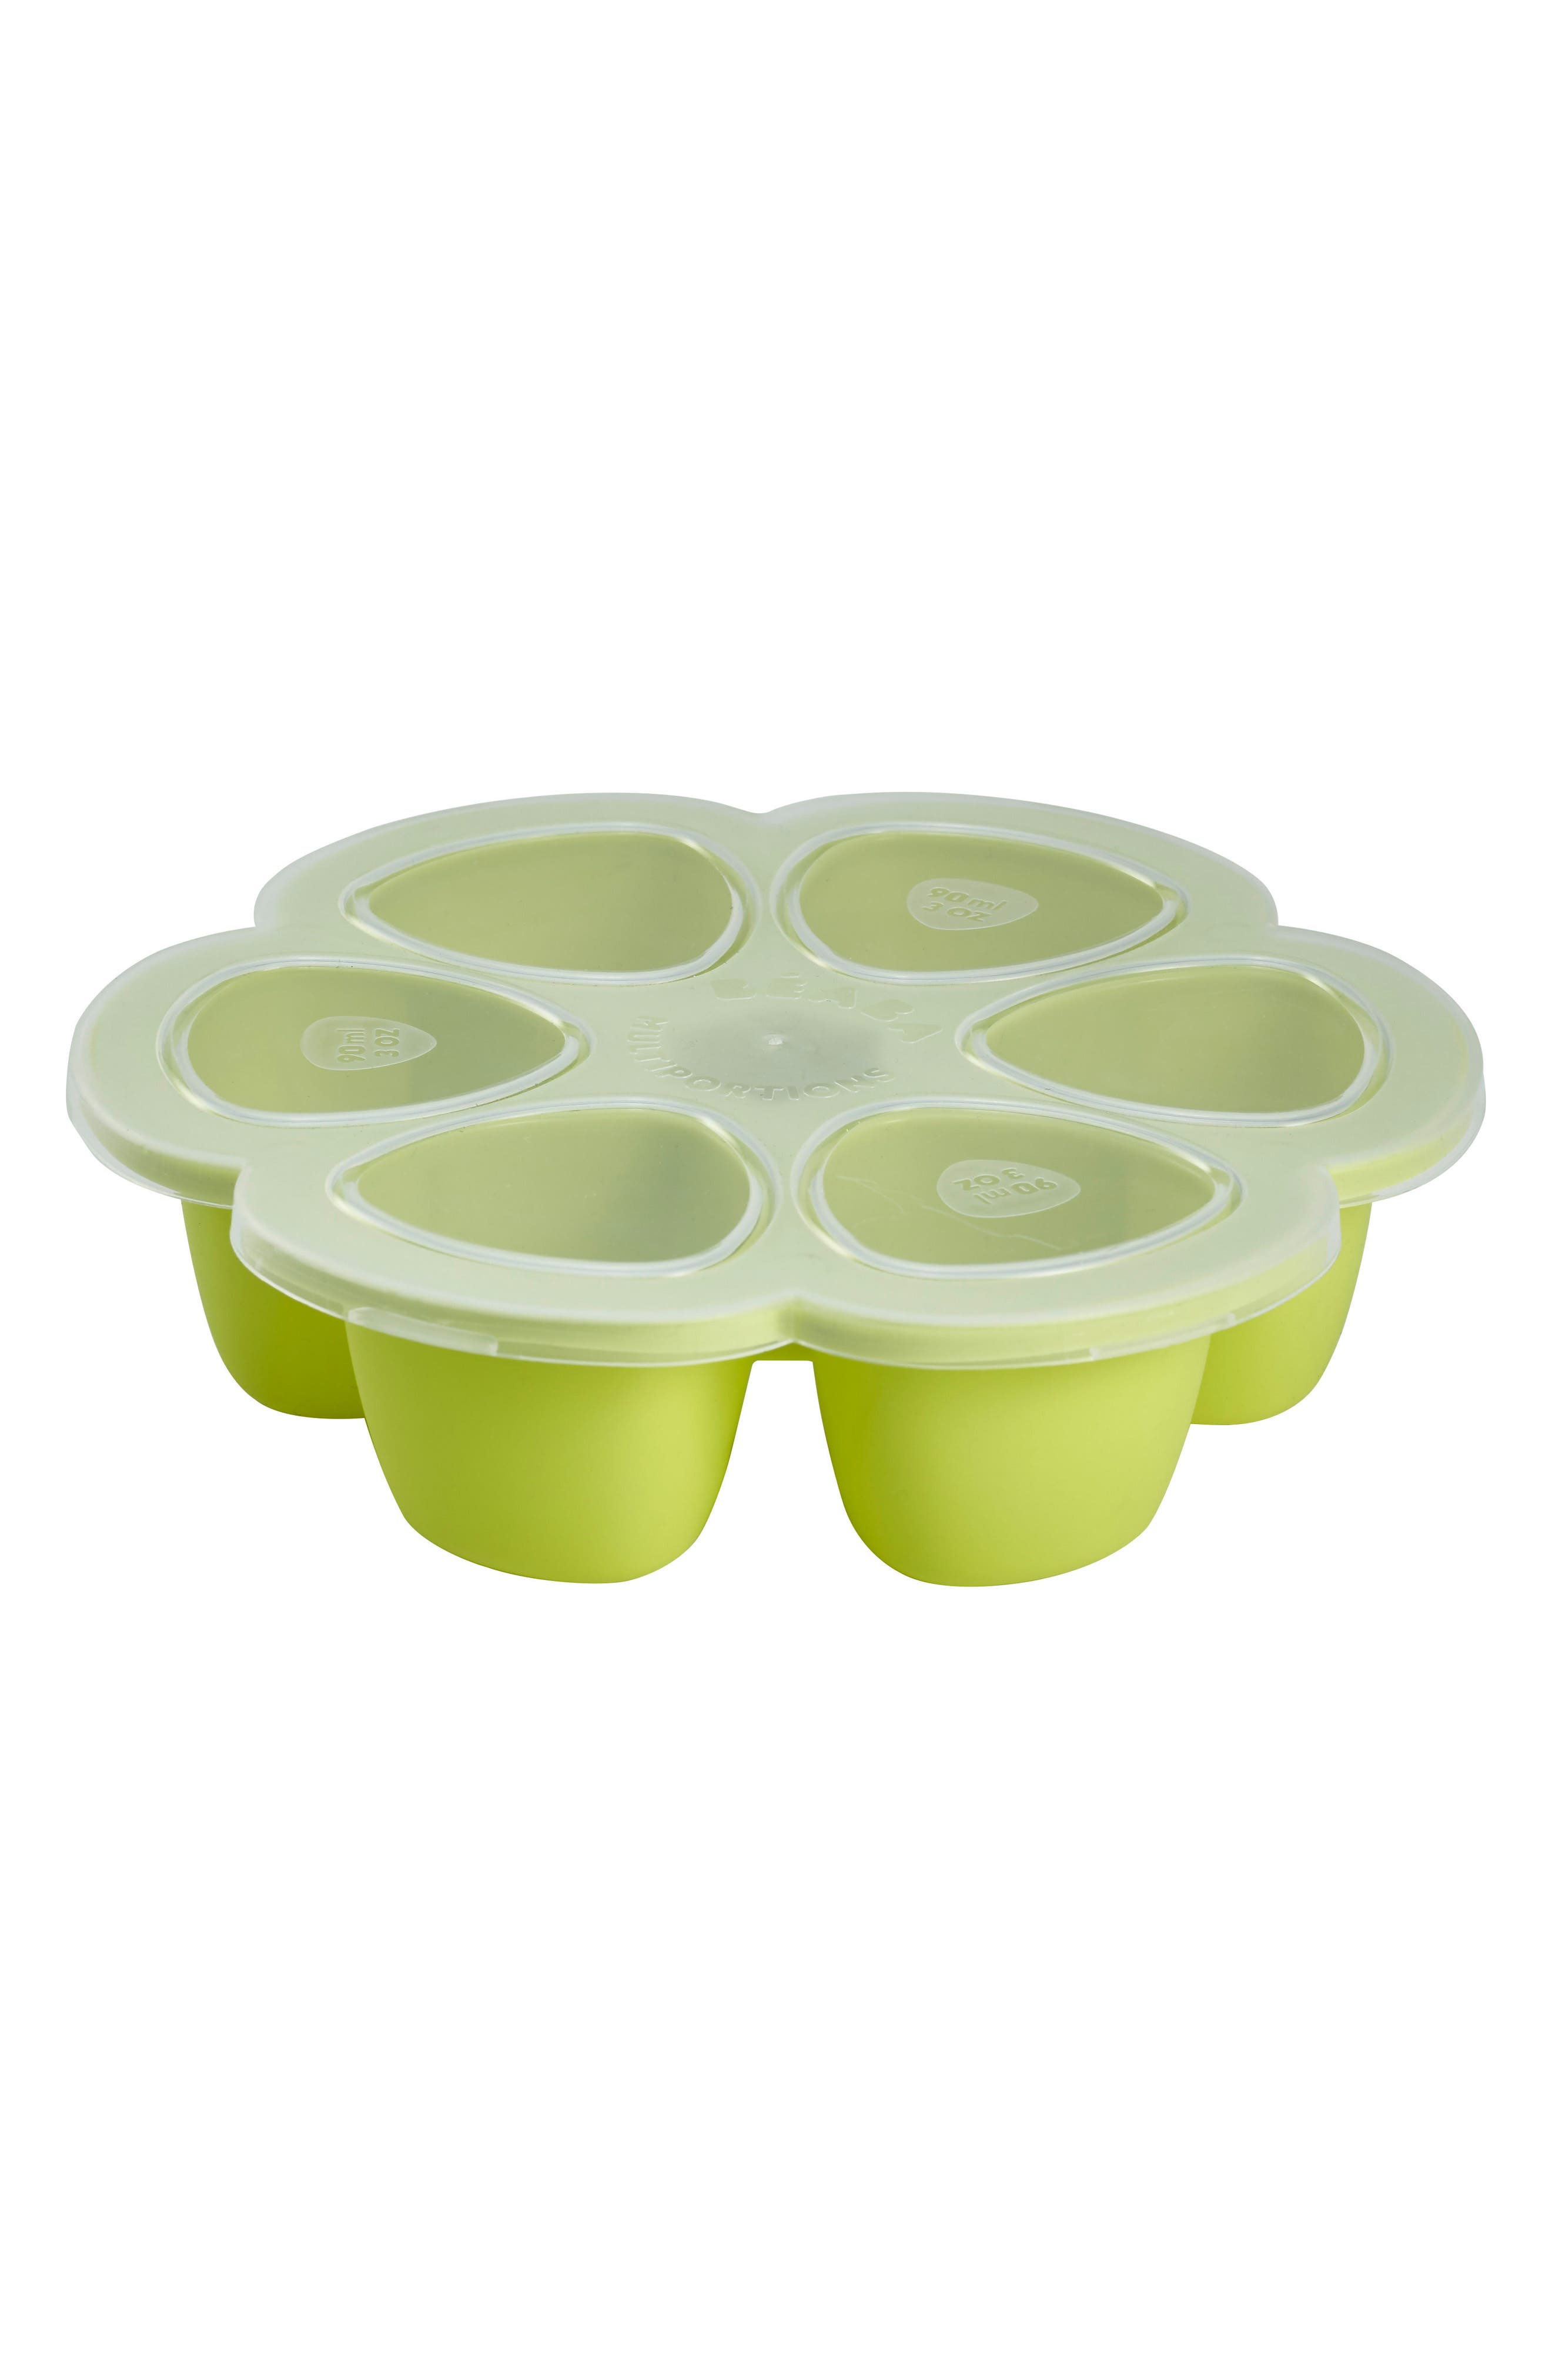 Alternate Image 1 Selected - BÉABA 'Multiportions™' Silicone 5 oz. Food Cup Tray